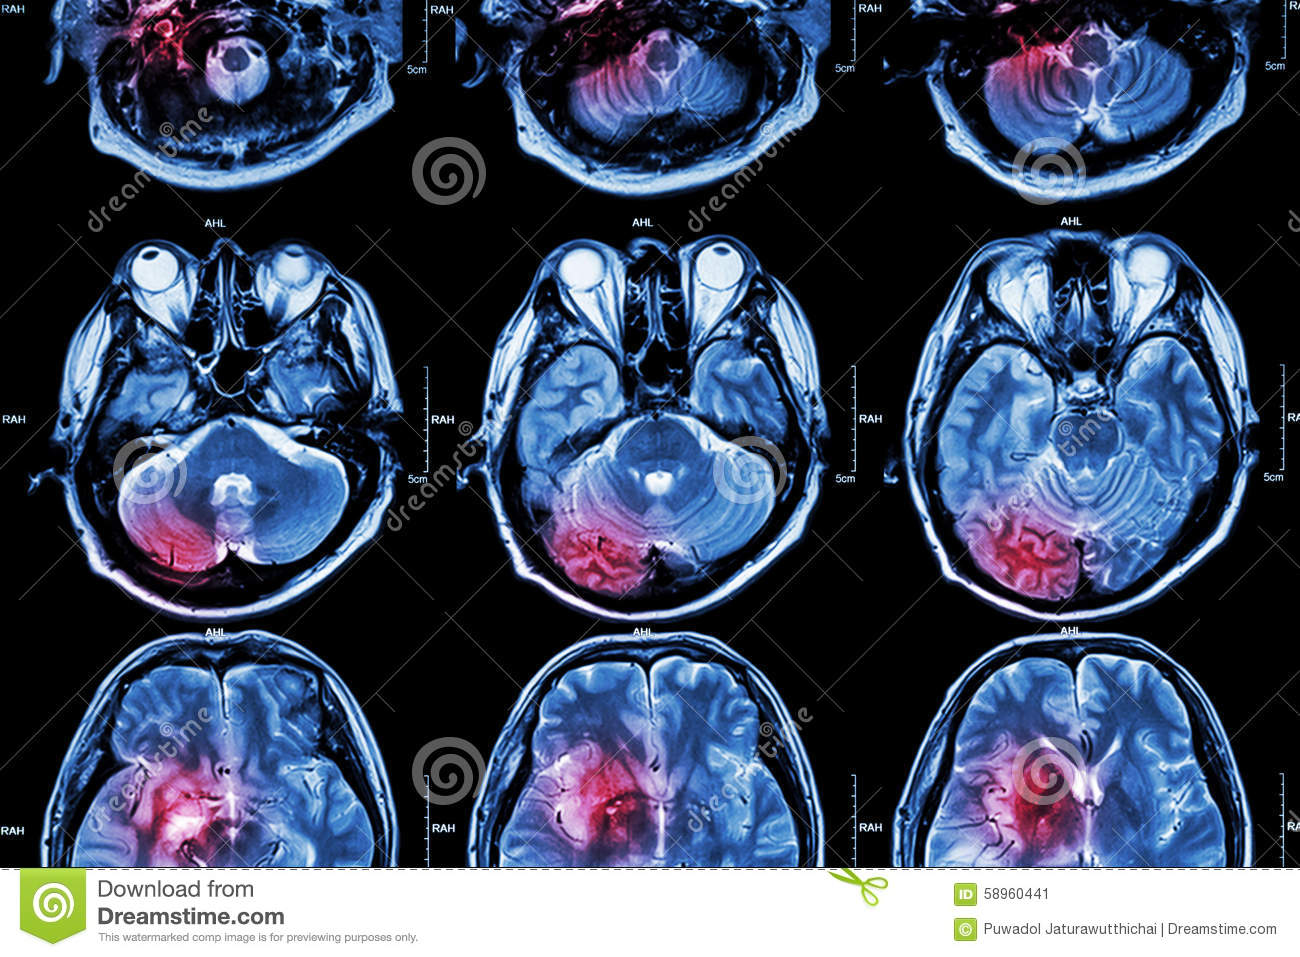 Film MRI ( Magnetic resonance imaging ) of brain ( stroke , brain tumor , cerebral infarction , intracerebral hemorrhage ) ( Medi